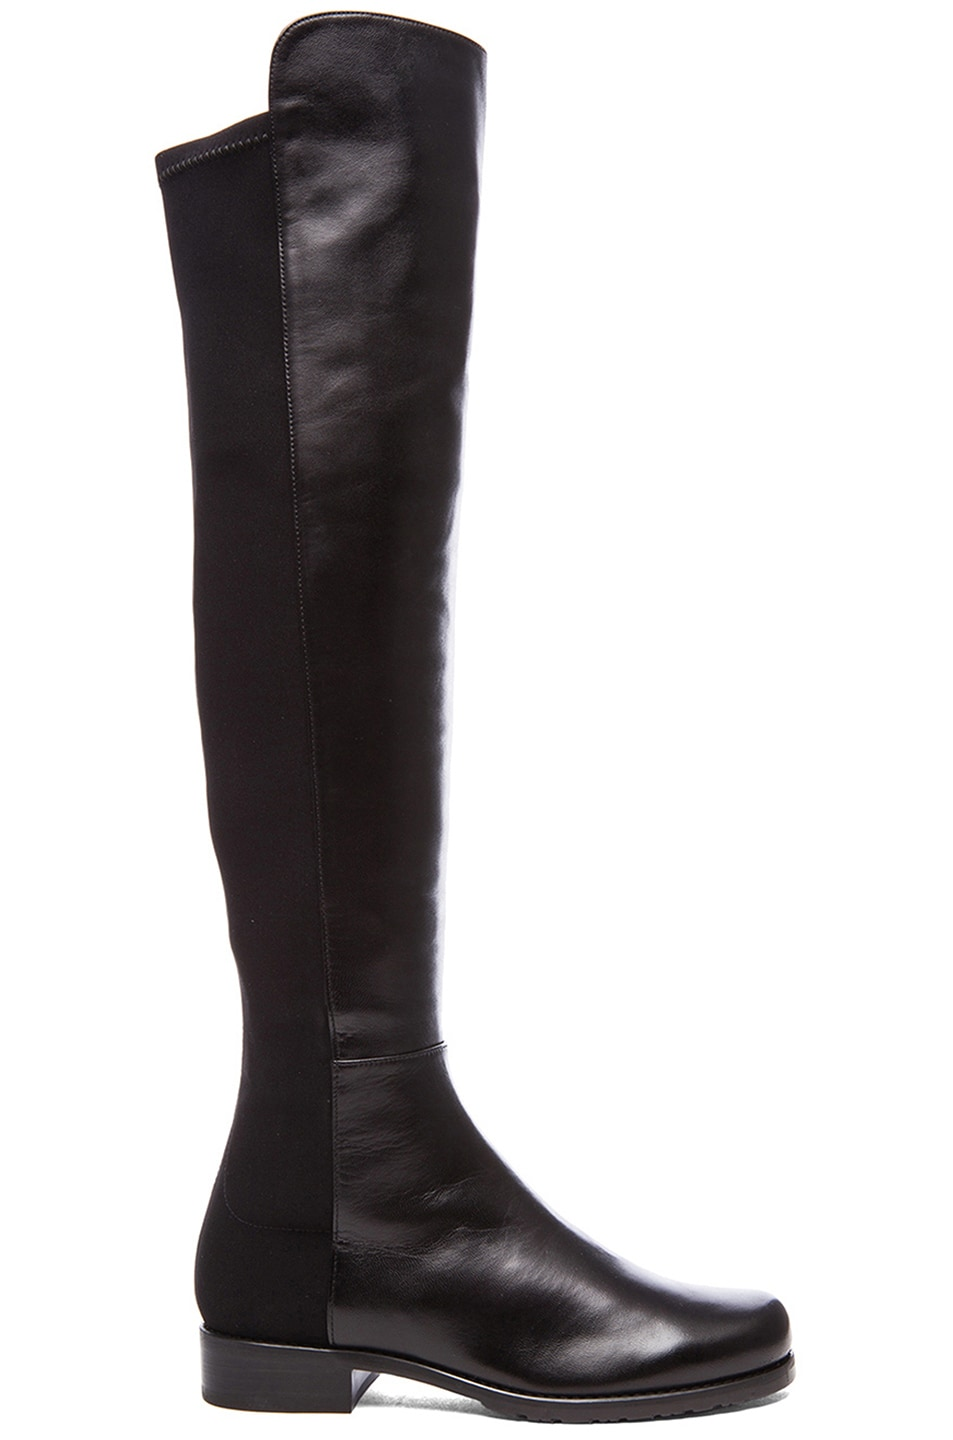 Image 1 of Stuart Weitzman 50/50 Leather & Neoprene Boots in Black